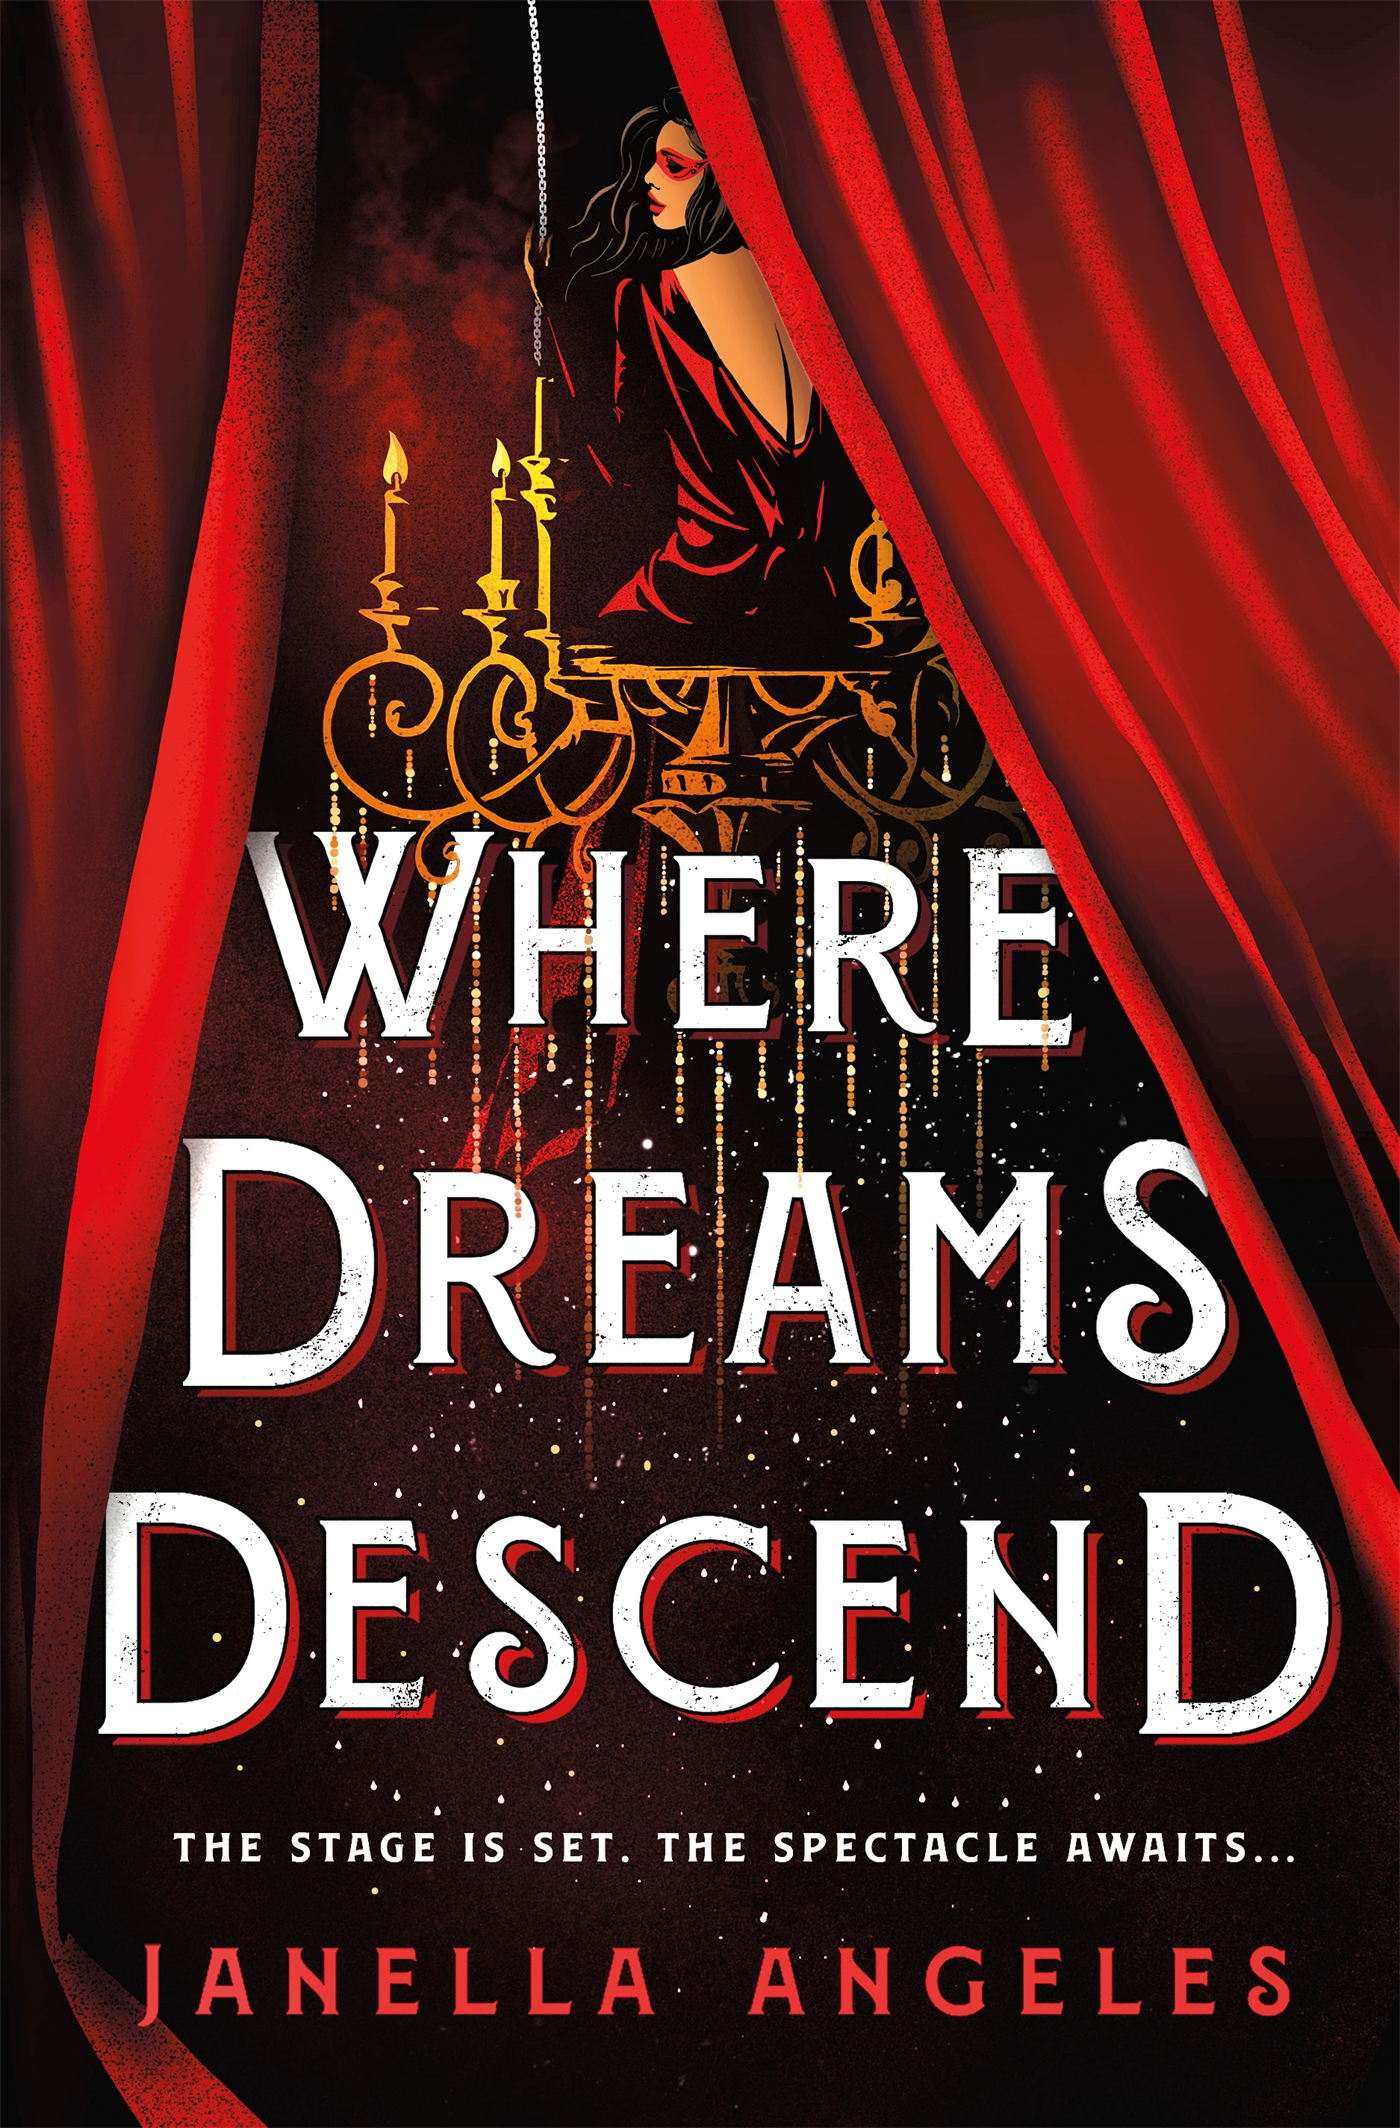 Where Dreams Descend by Janella Angeles (23 Books by Filipino Diaspora Authors For Your Shelf)